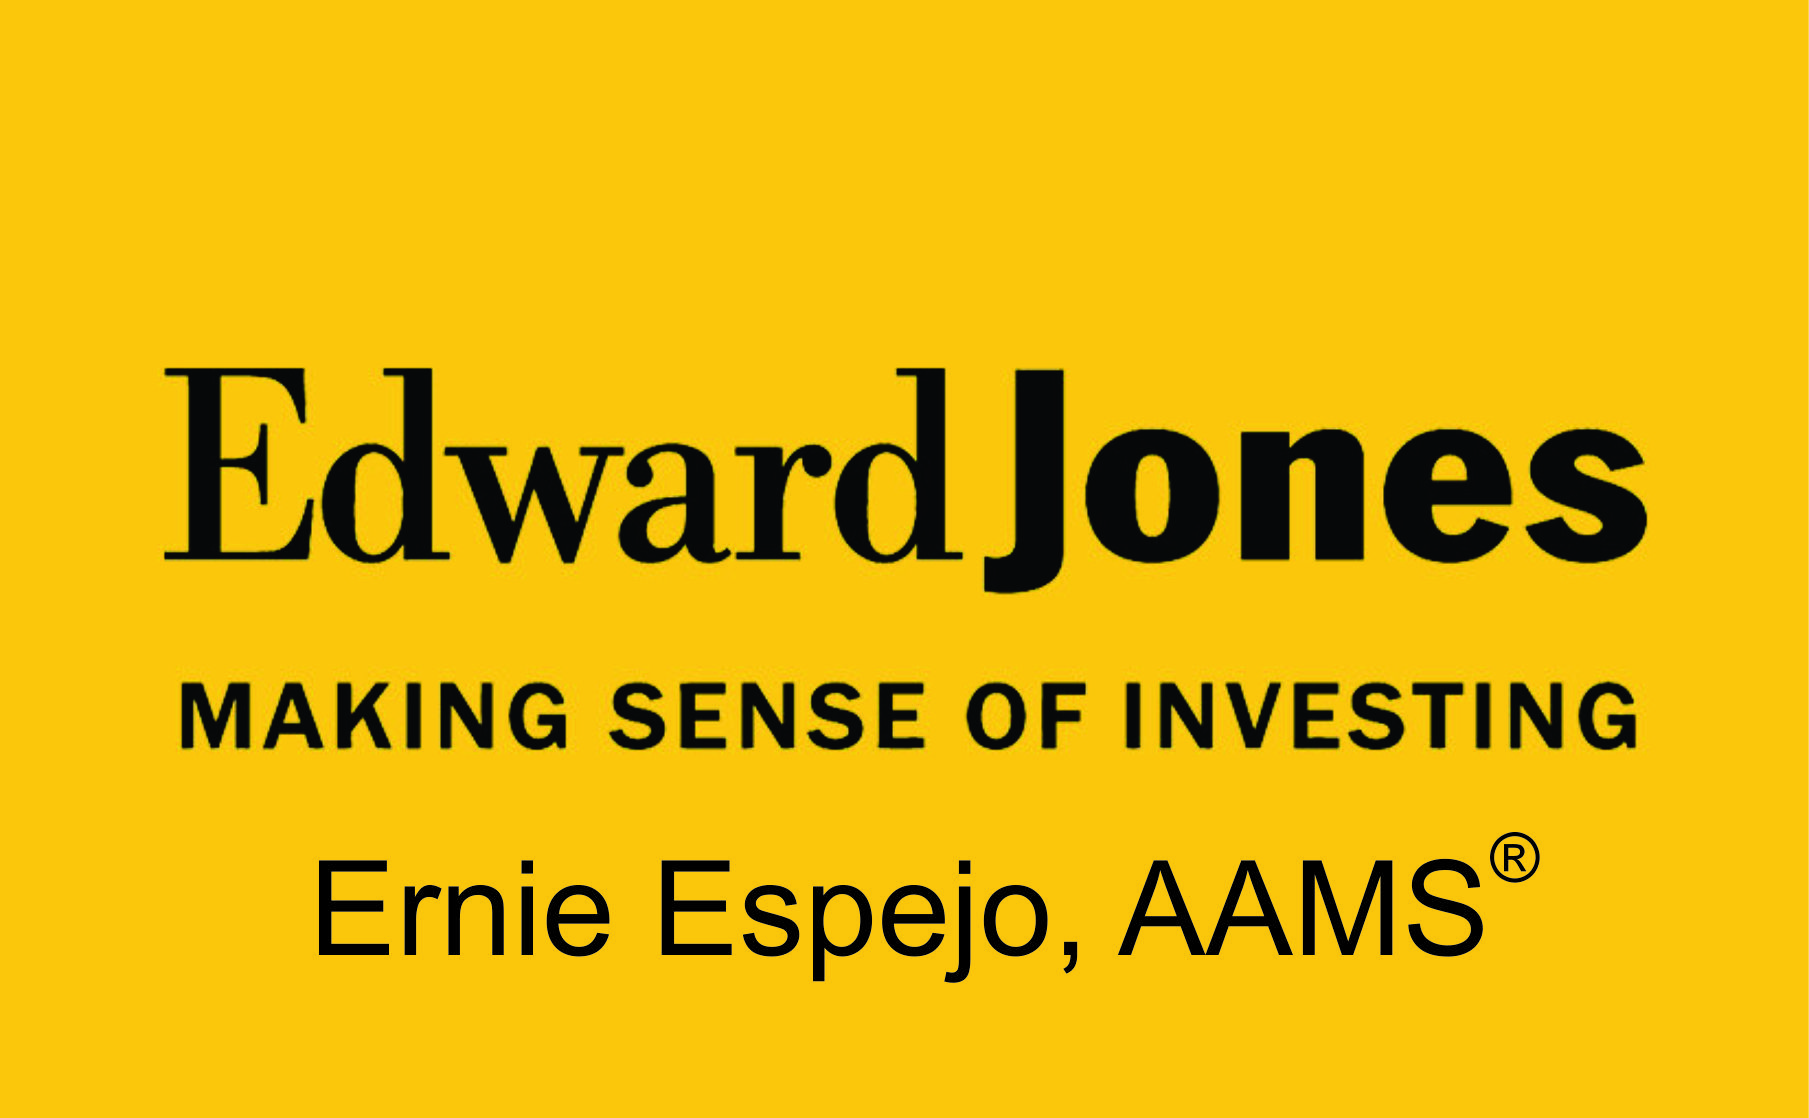 ernie espejo edward jones